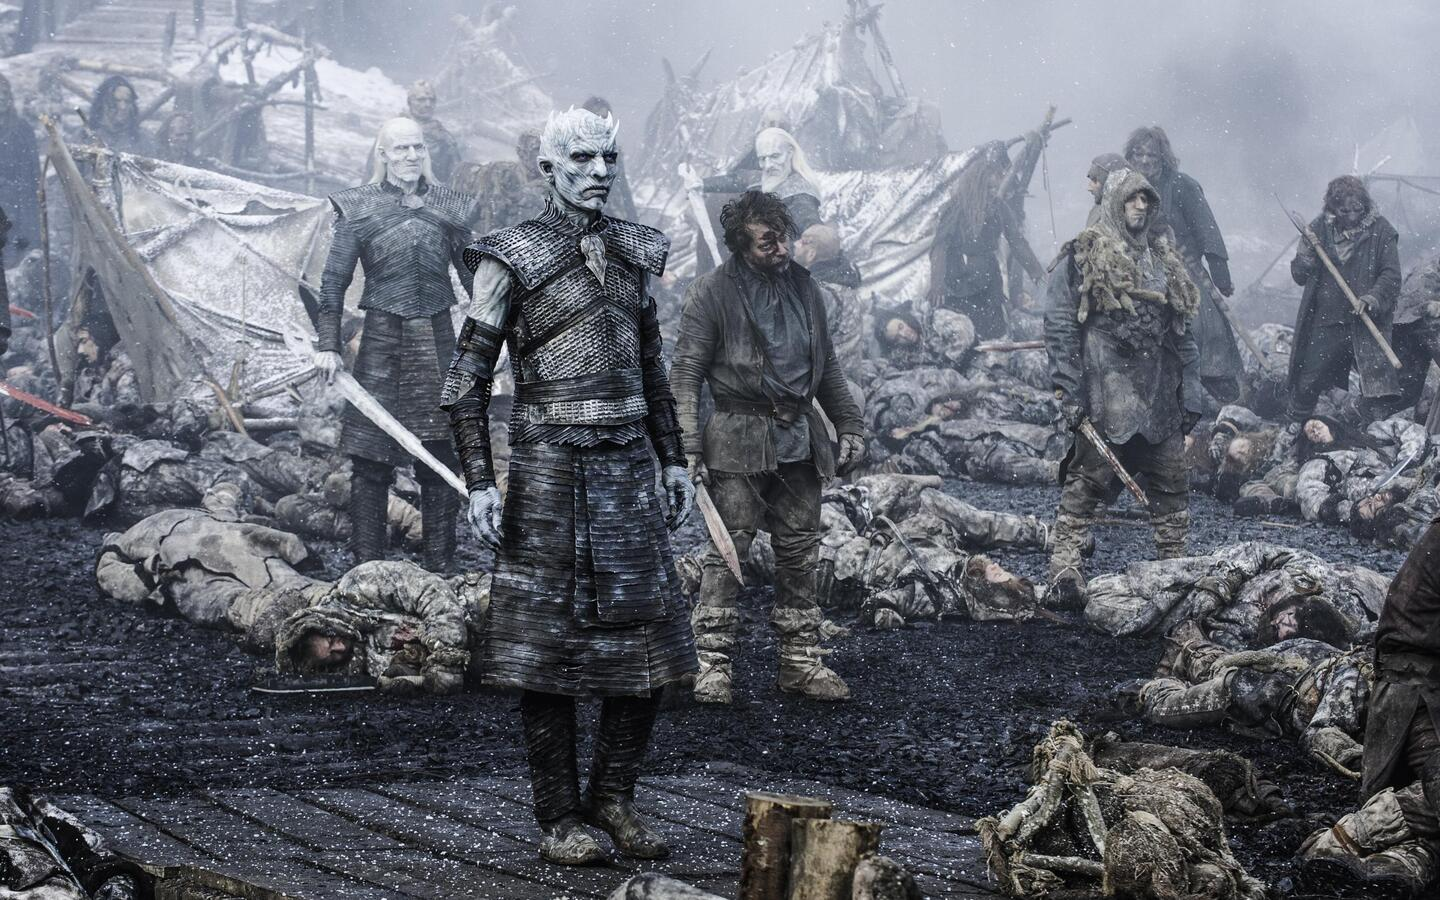 1440x900 White Walkers Game Of Thrones 1440x900 Resolution Hd 4k